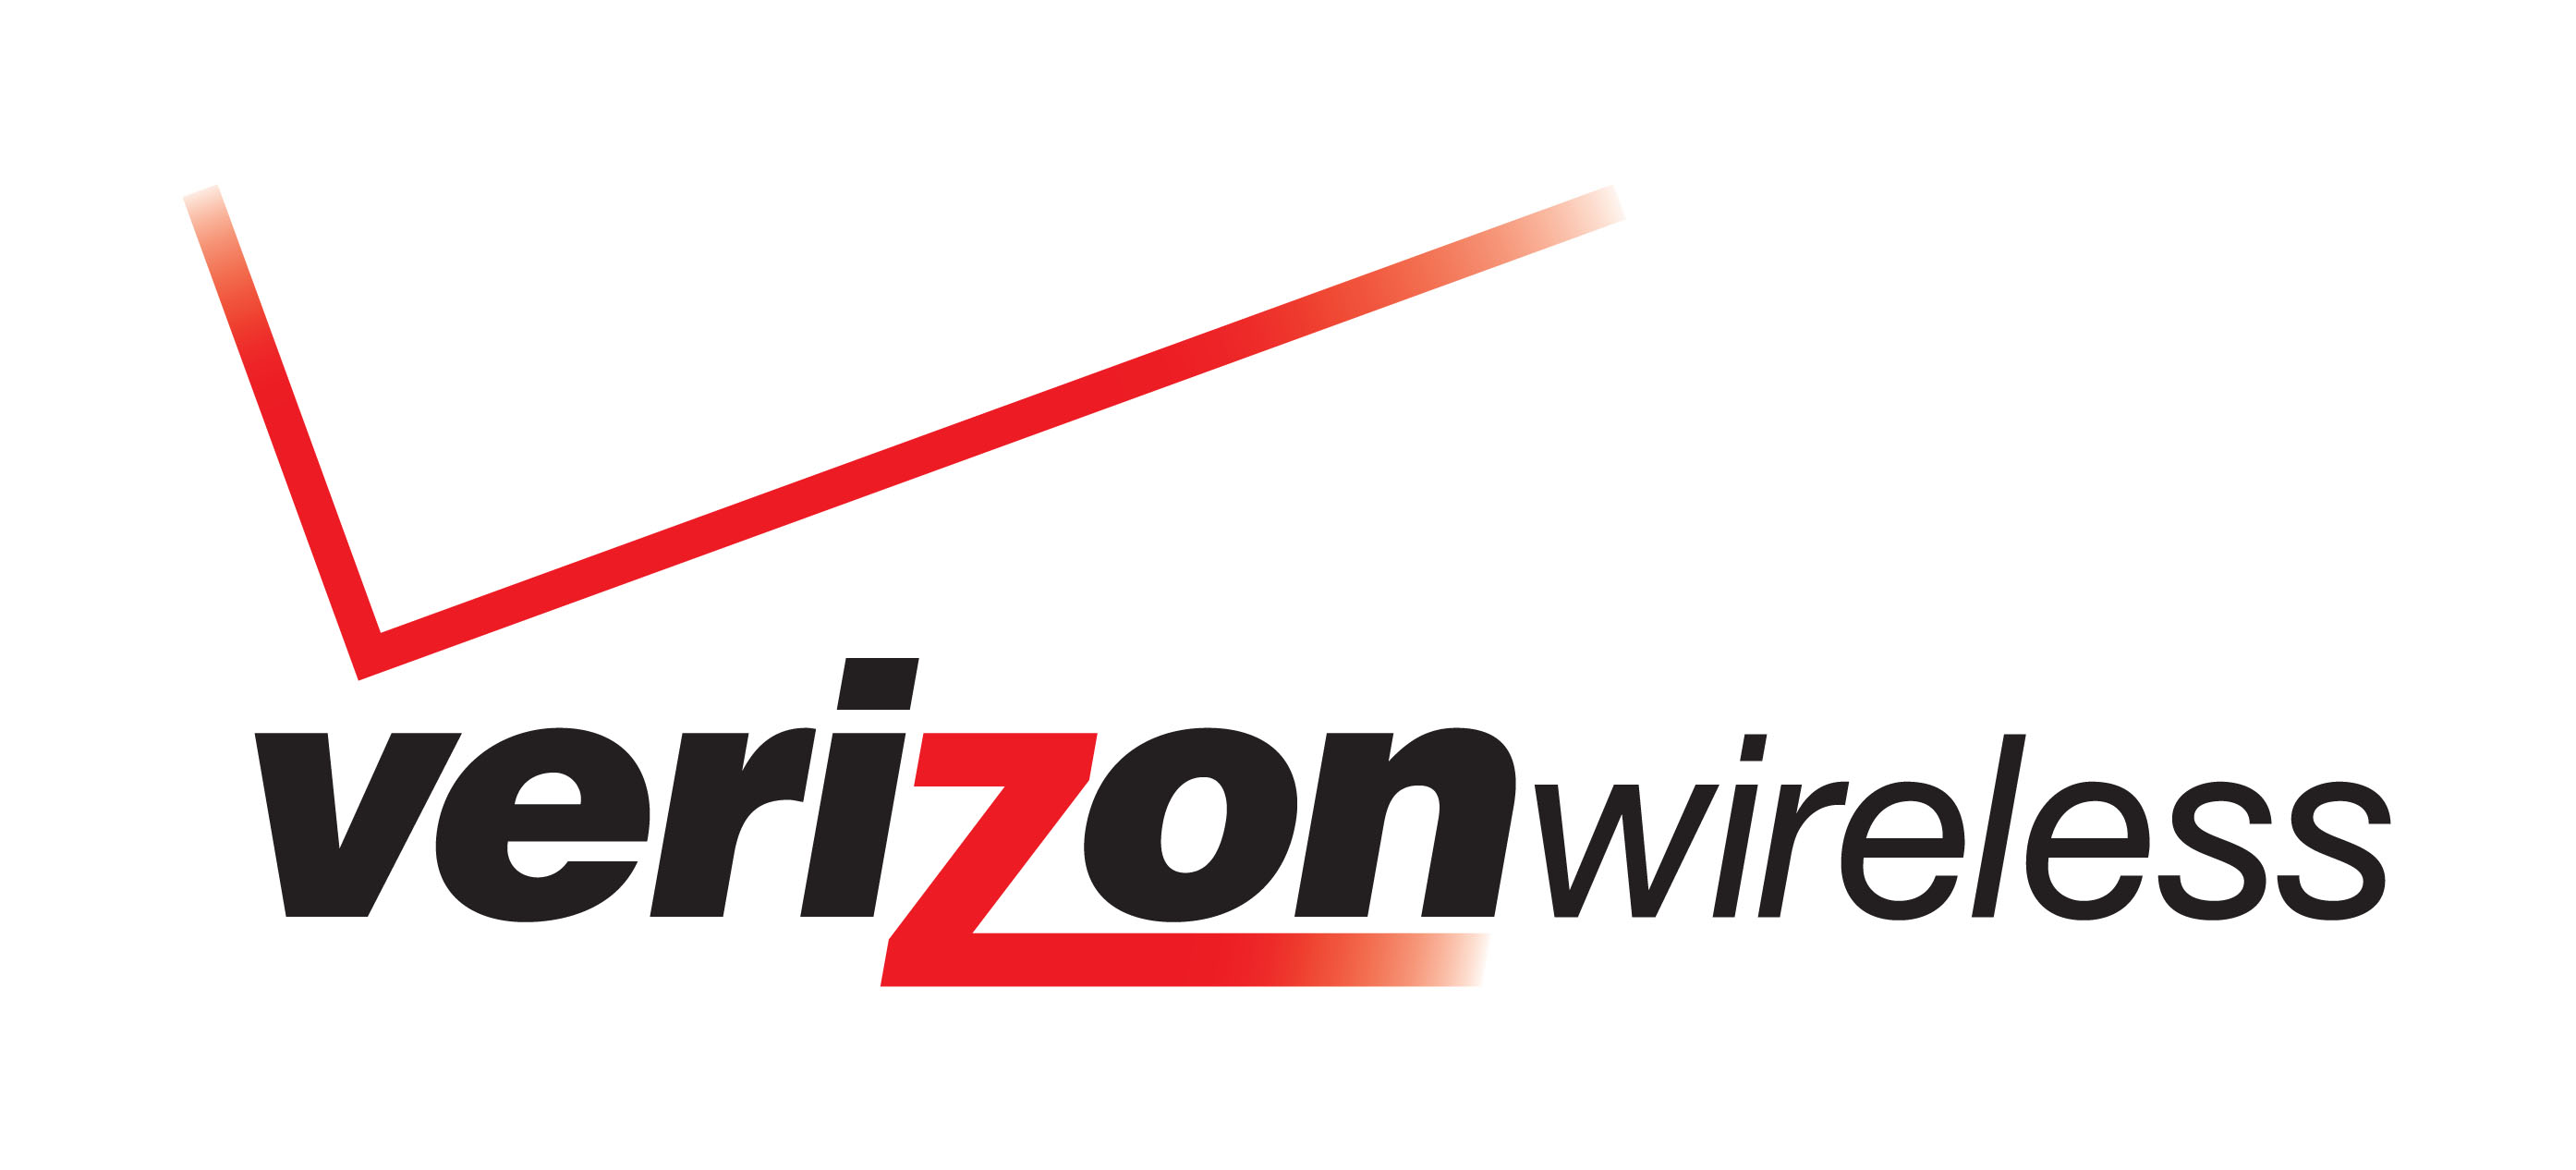 Debbie Millman: Verizon's new logo is 'boring' - Business